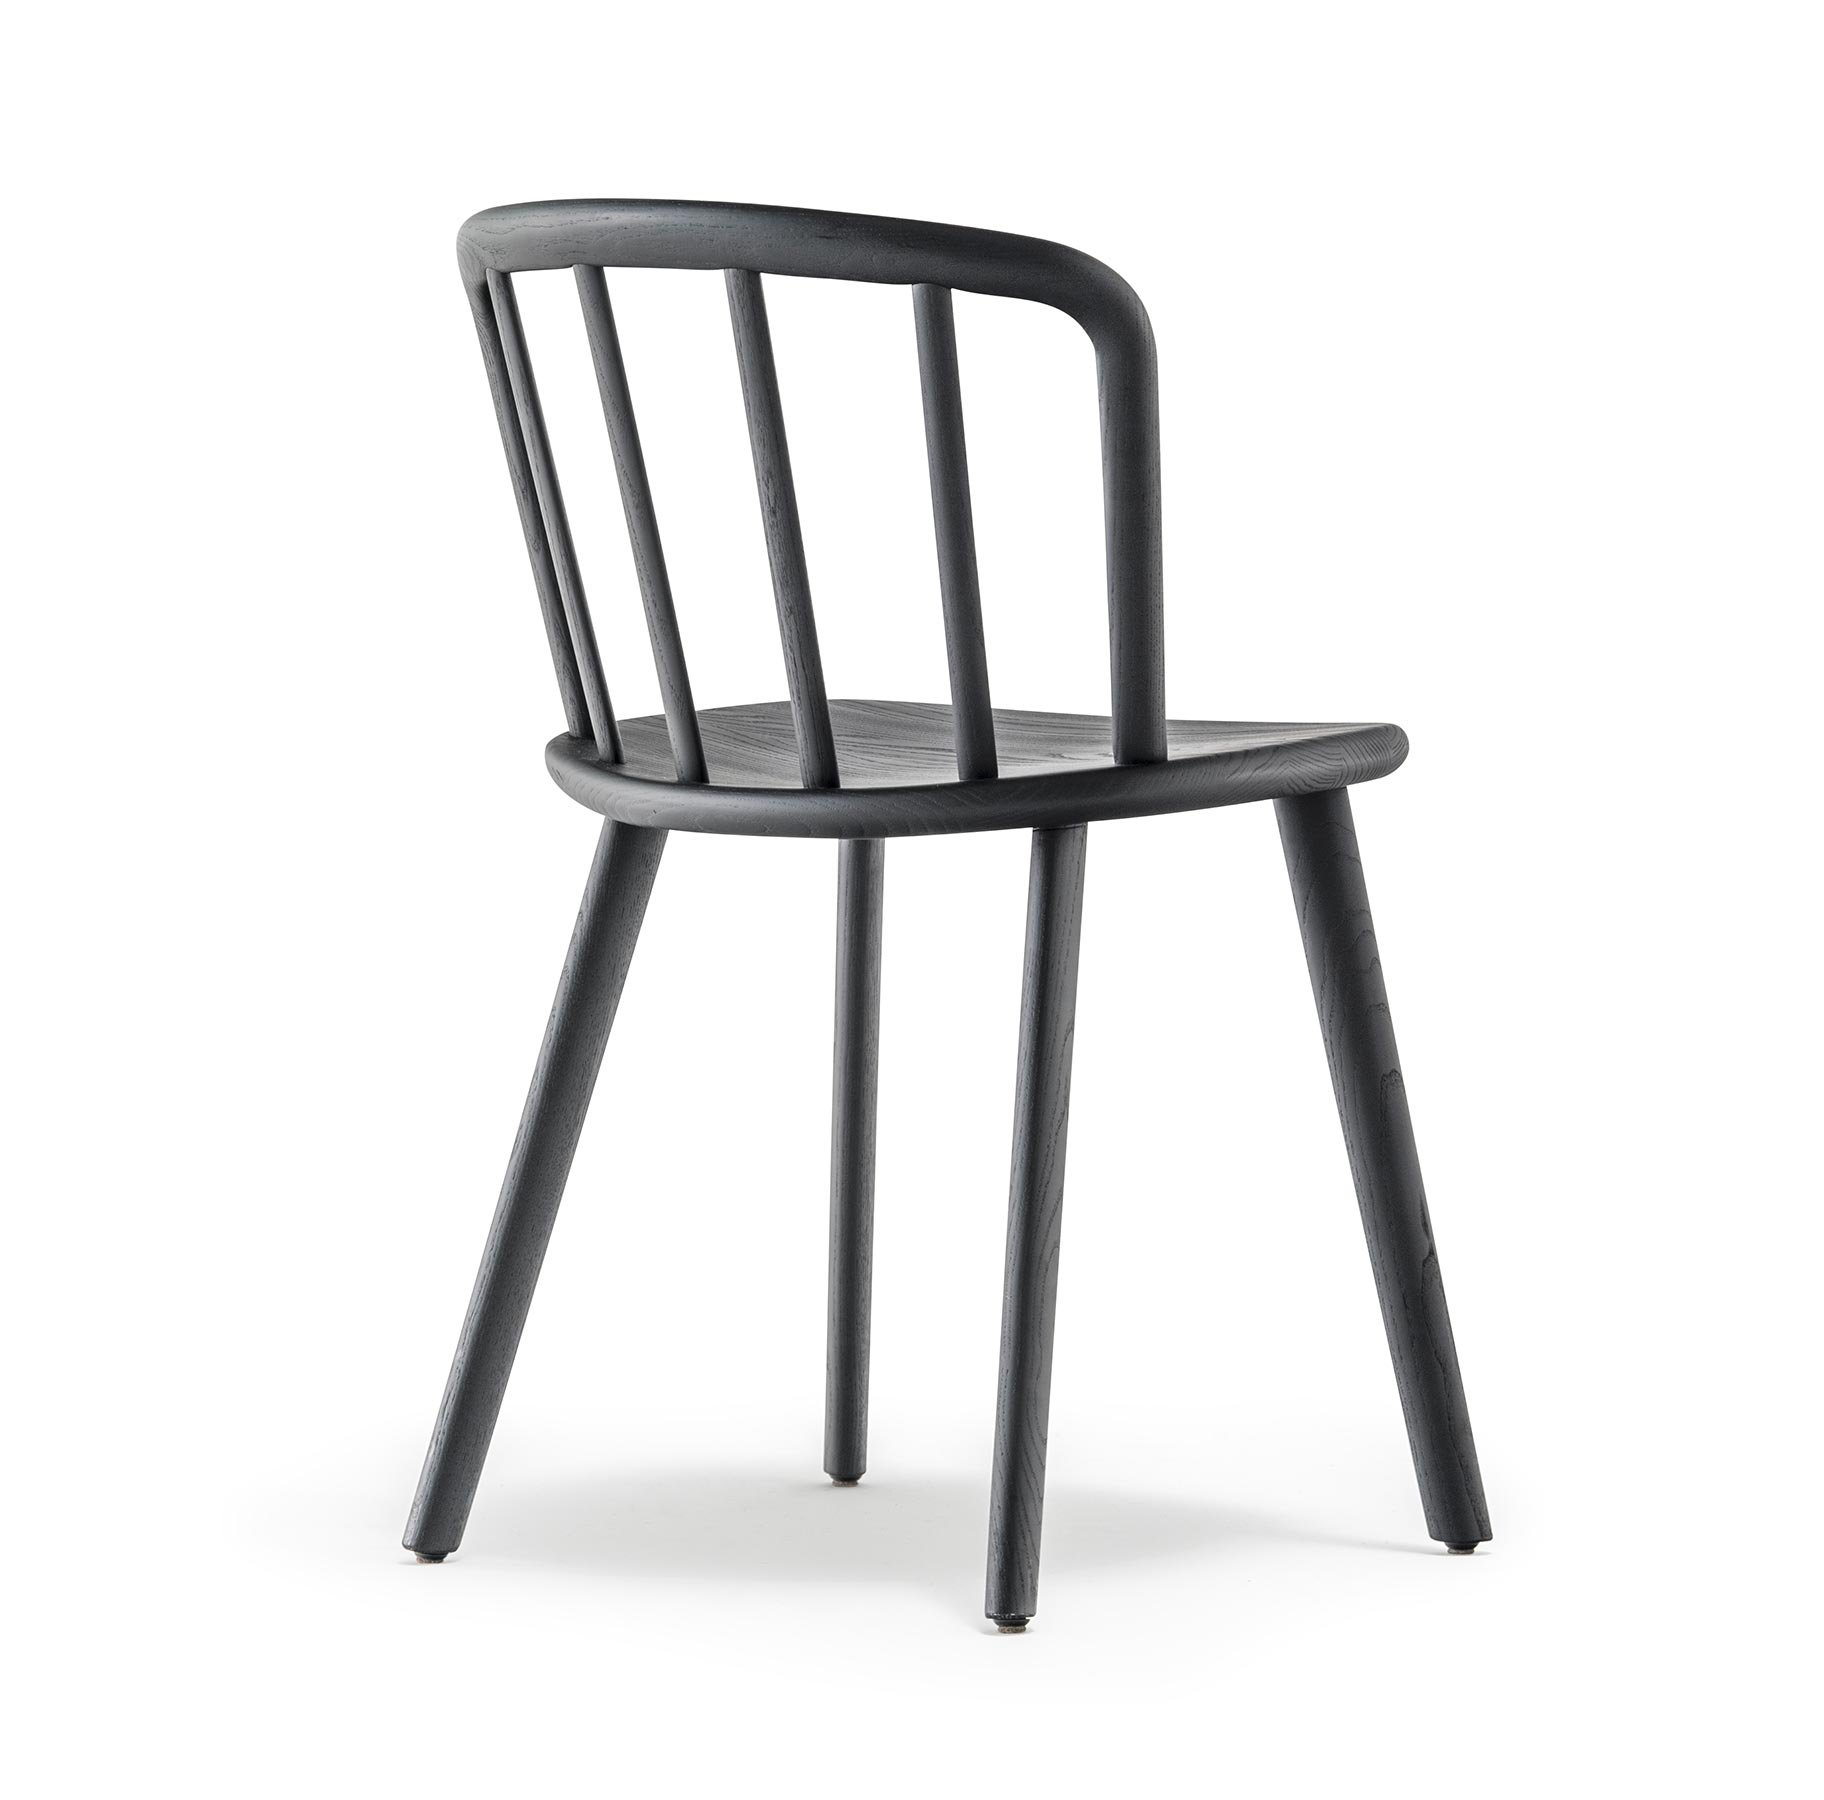 Nym 2830 chair from Pedrali, designed by CMP Design